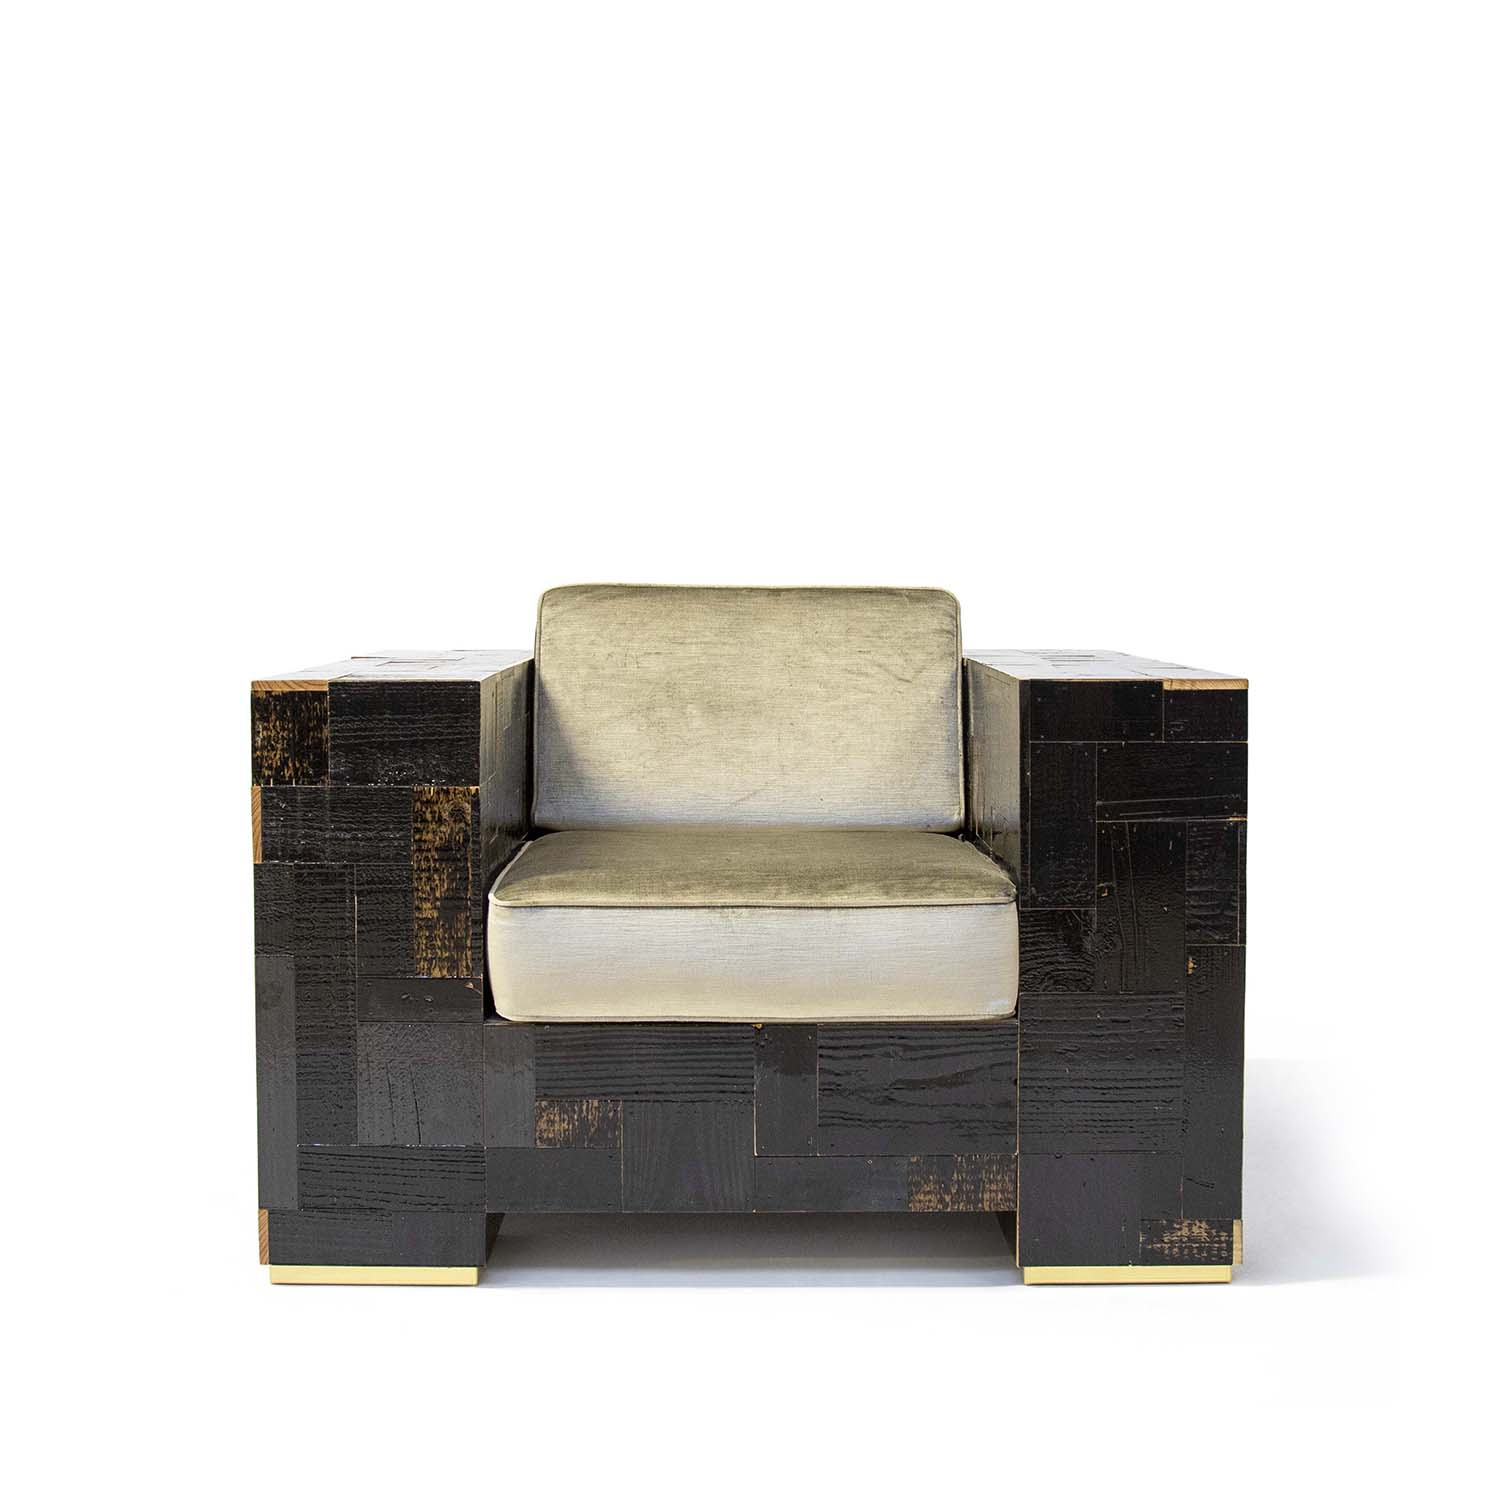 01_Sloophout_Fauteuil_Gestoffeerd_front-thumbnail